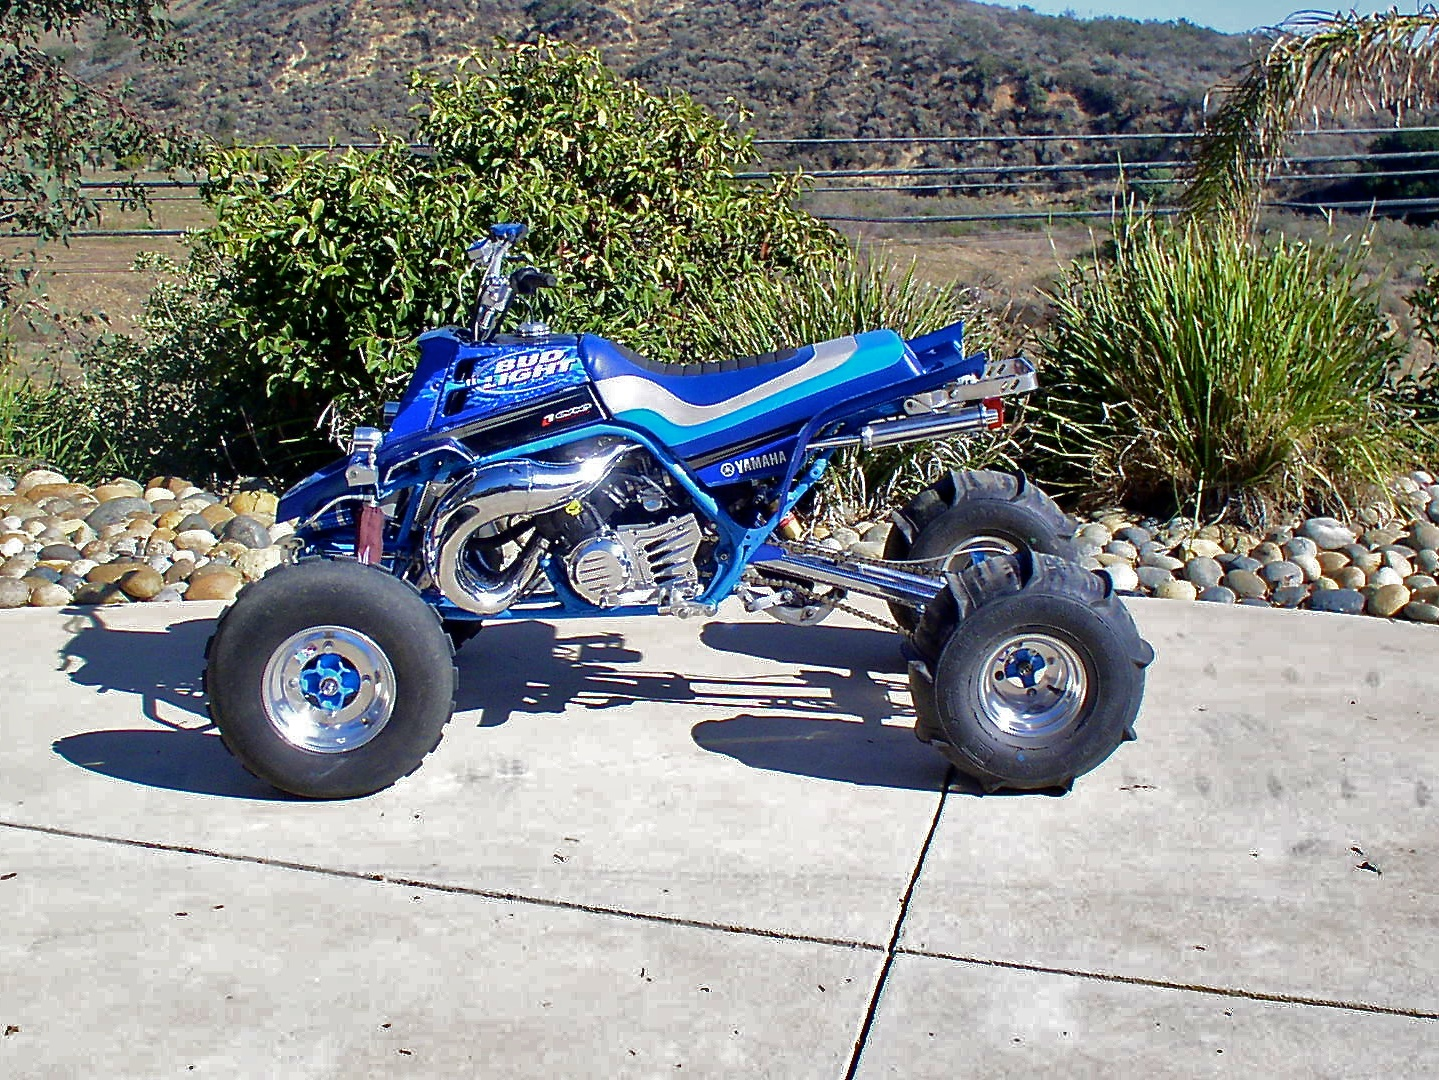 2002 Banshee with 510cc Cheetah Motor - ATV's/ Motorcycles